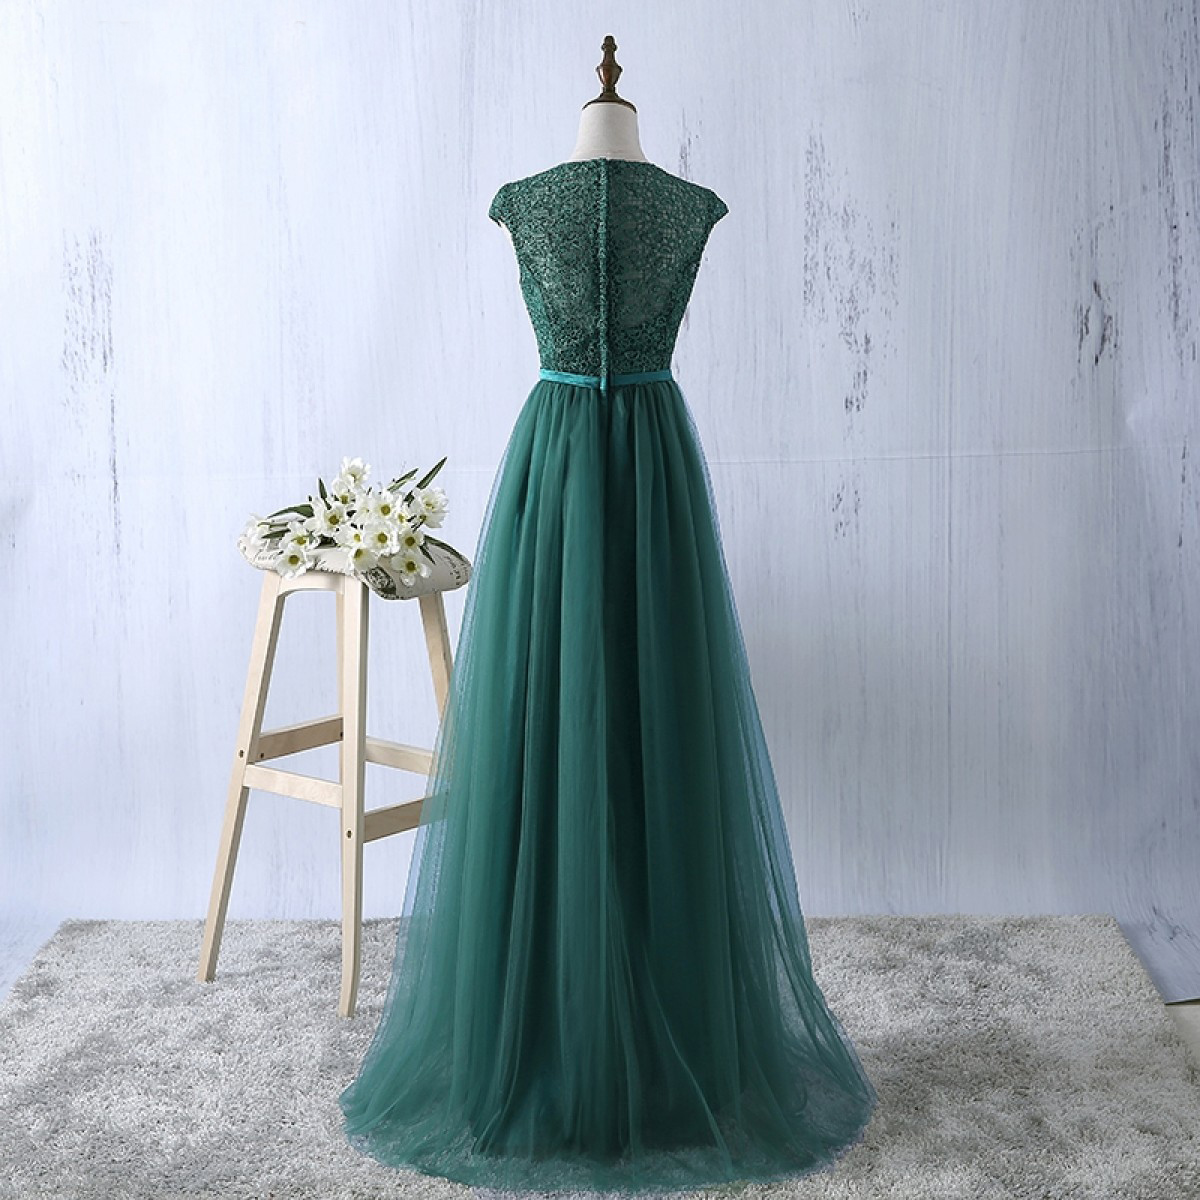 New Arrival A-Line Round Neck Cap Sleeves Long Prom Dress ...